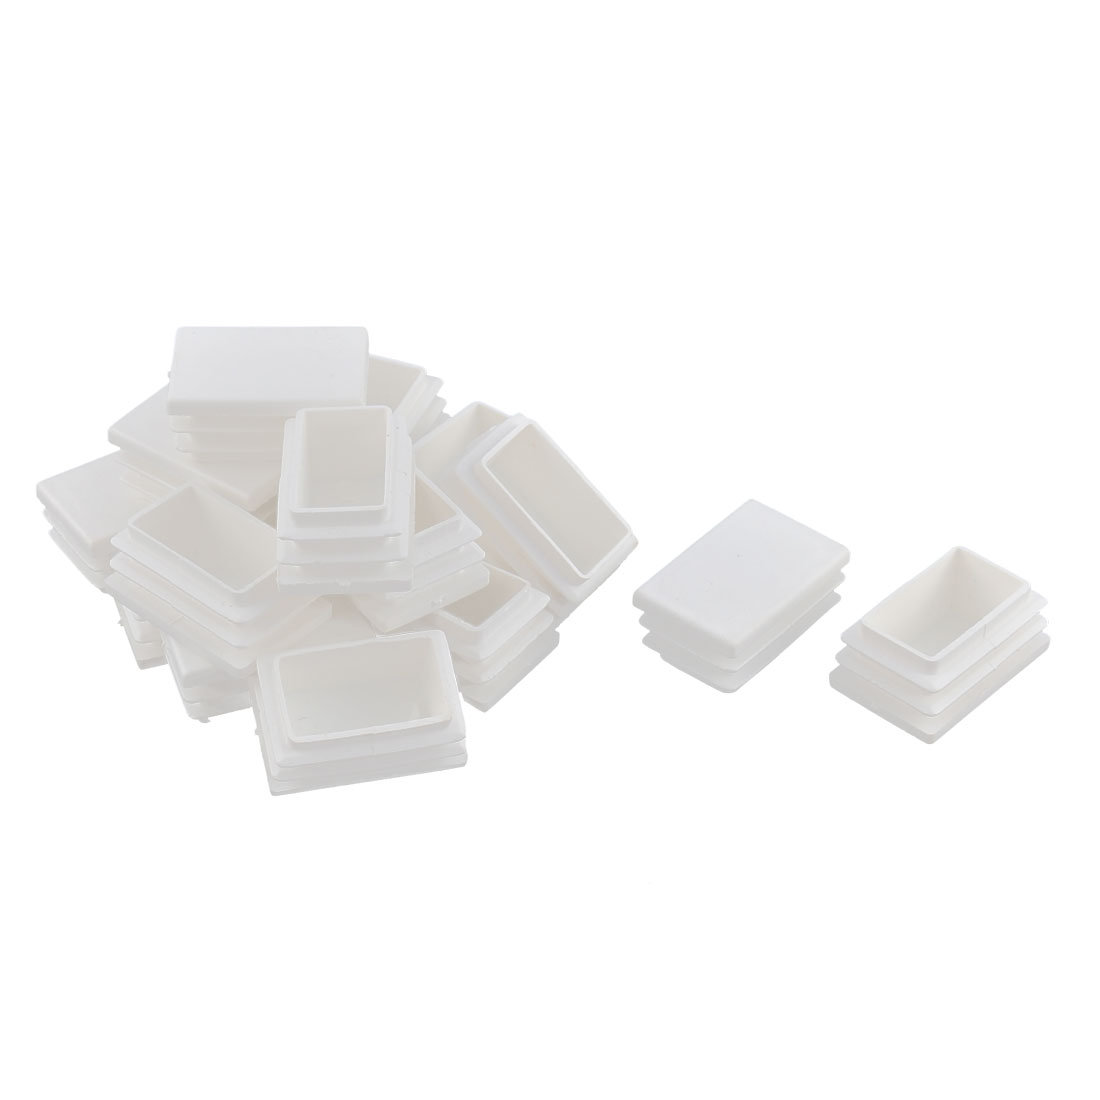 Table Legs Feet Plastic Rectangle Tube Inserts End Blanking Caps White 16pcs